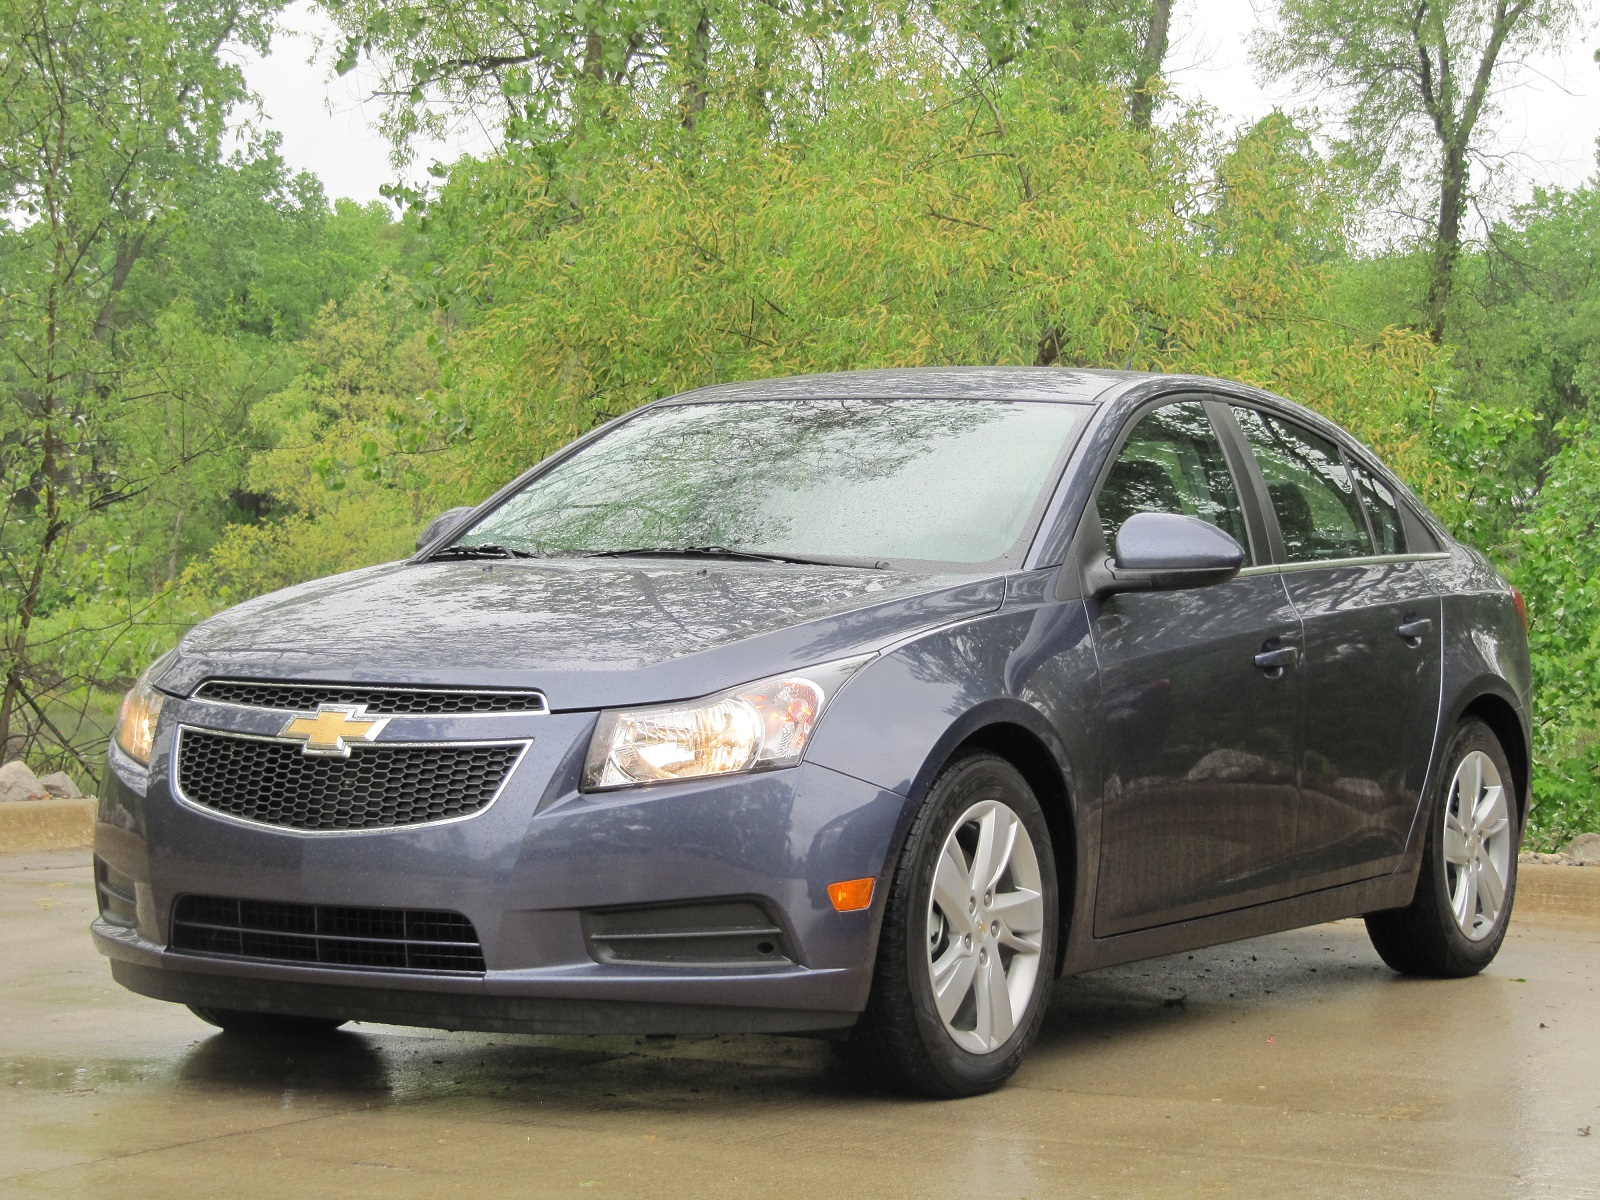 2014 Chevy Cruze Diesel First Drive